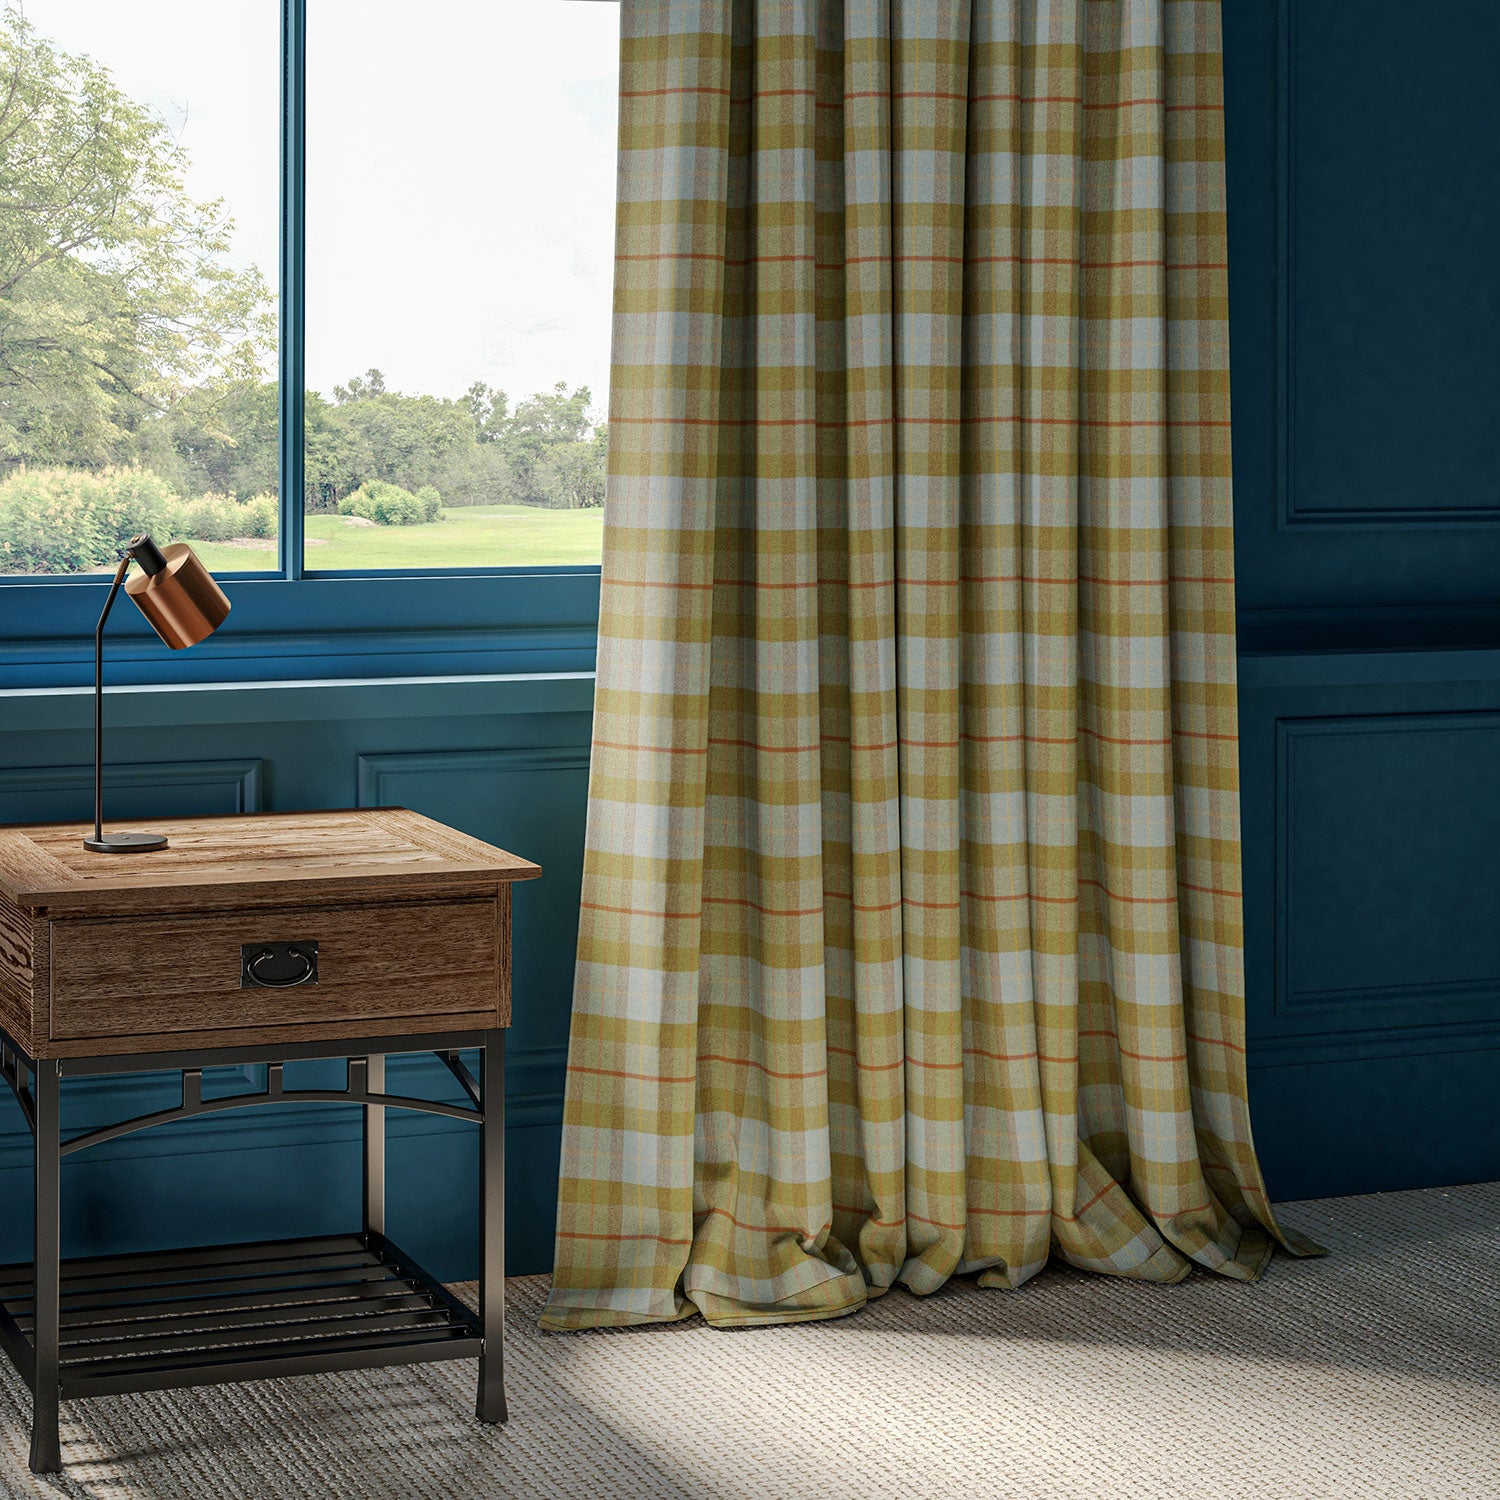 Curtains in a green and blue wool check.